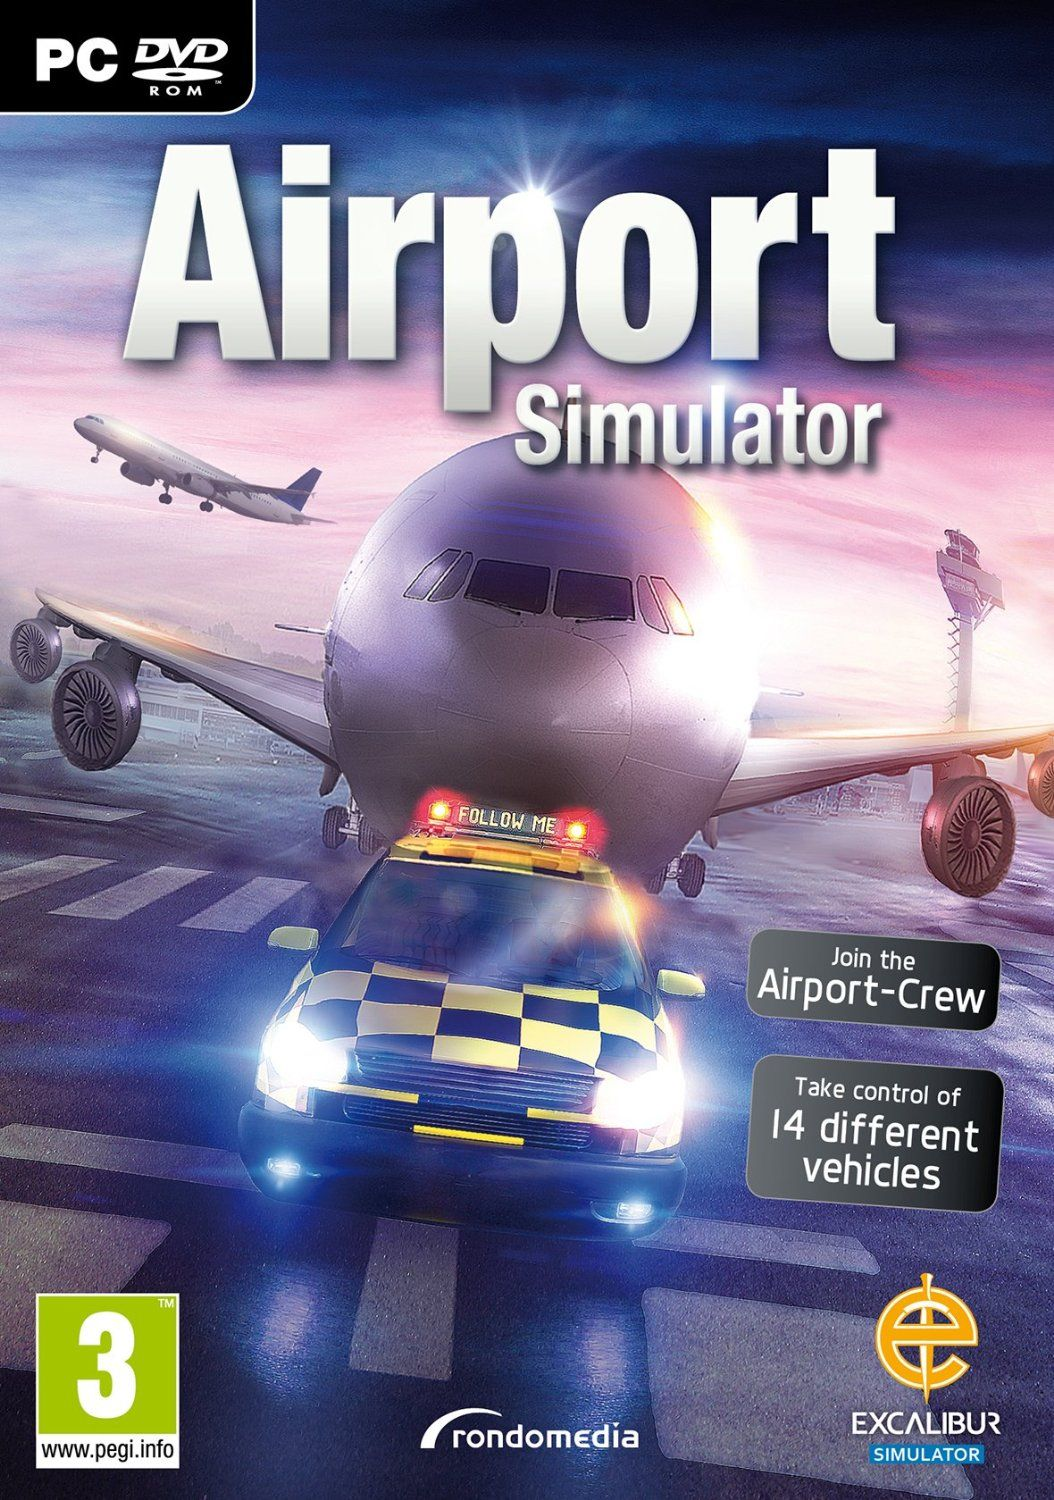 Airport Simulator (PC) - 1